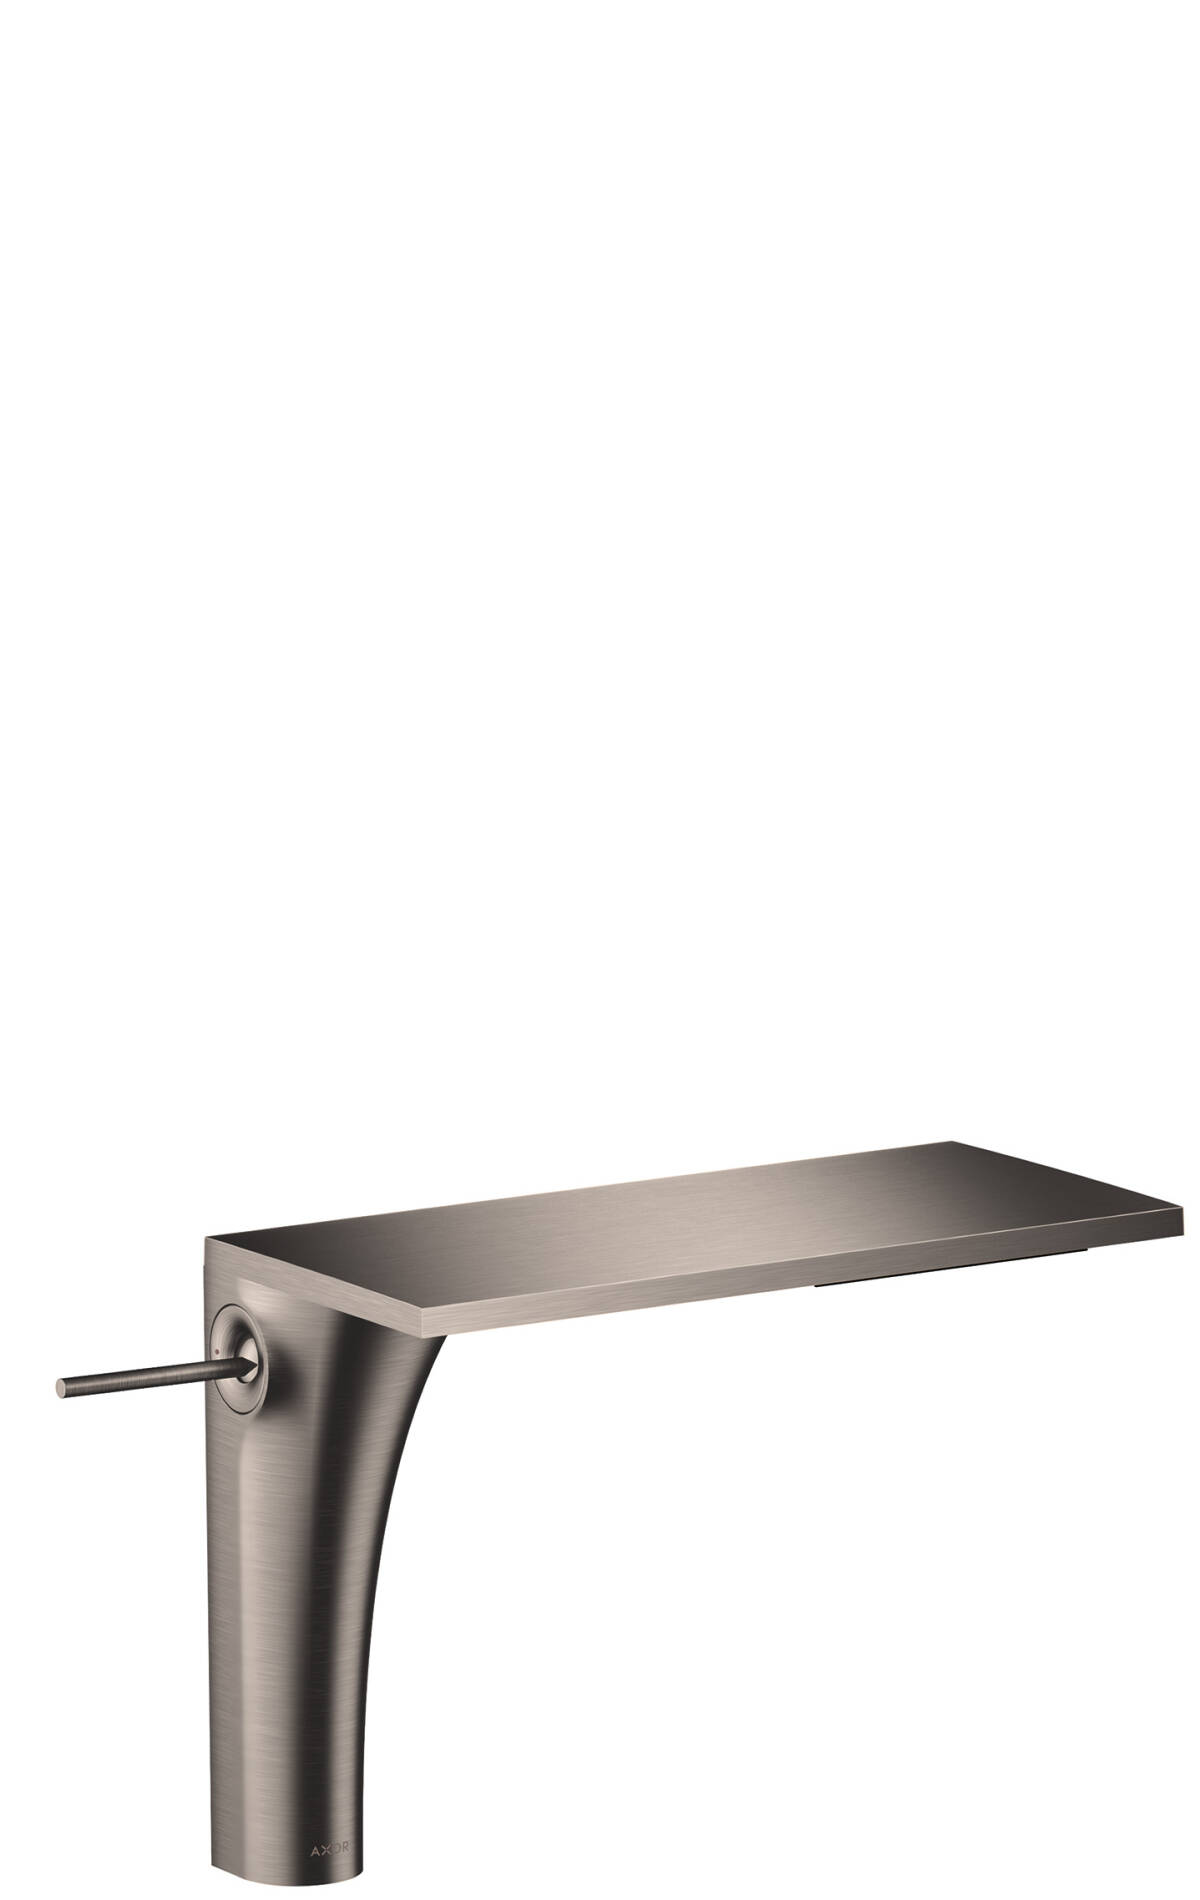 Single lever basin mixer 220 without pull-rod for wash bowls, Stainless Steel Optic, 18020800